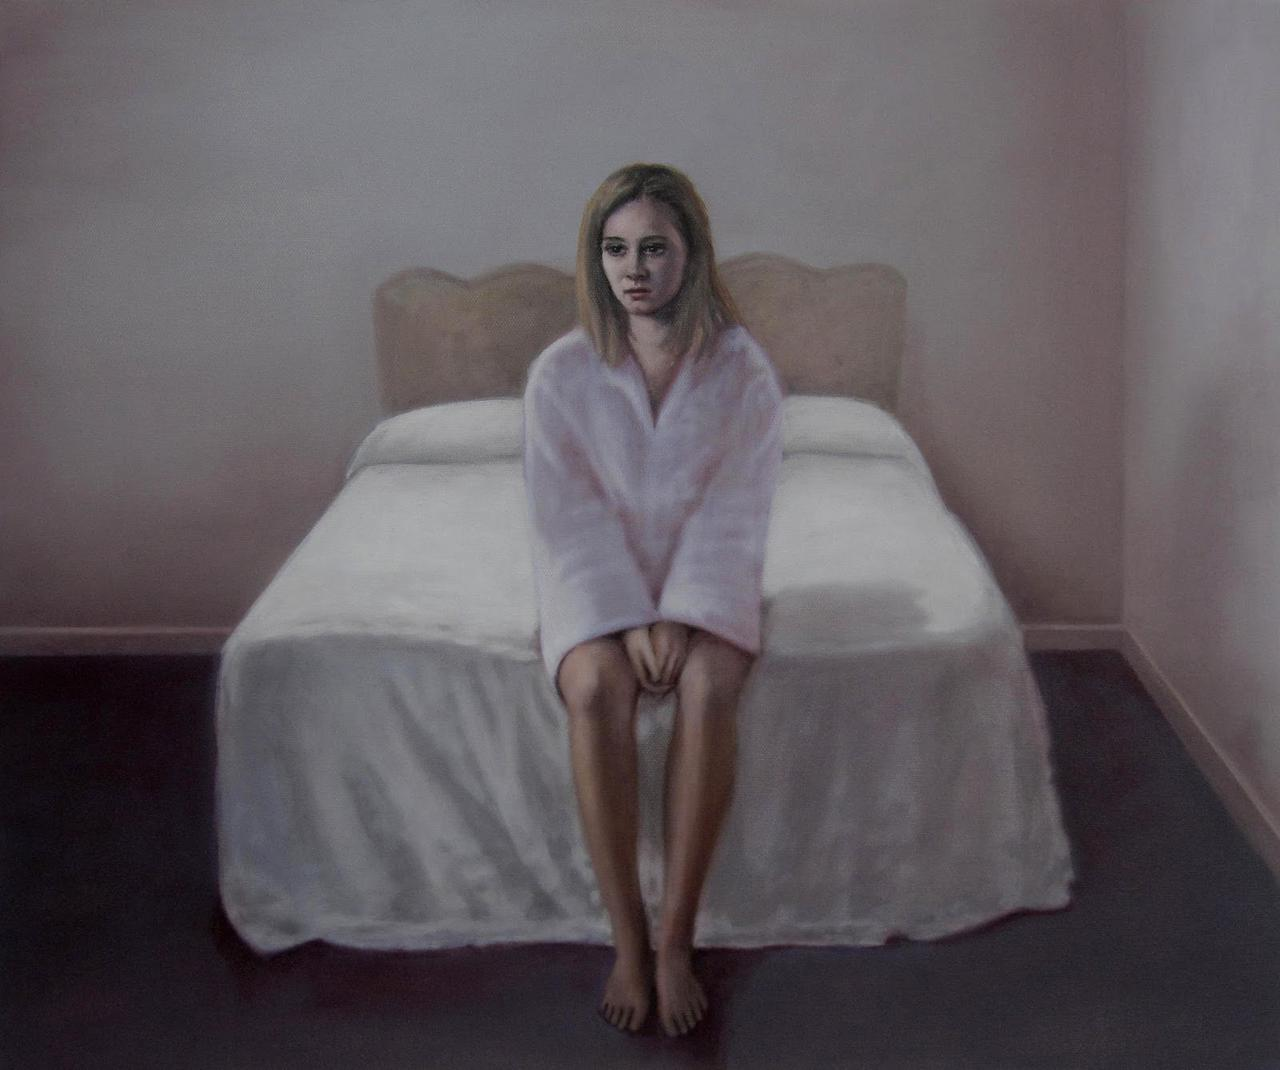 The Removal 15, oil on canvas, 50 x 60cm, 2010